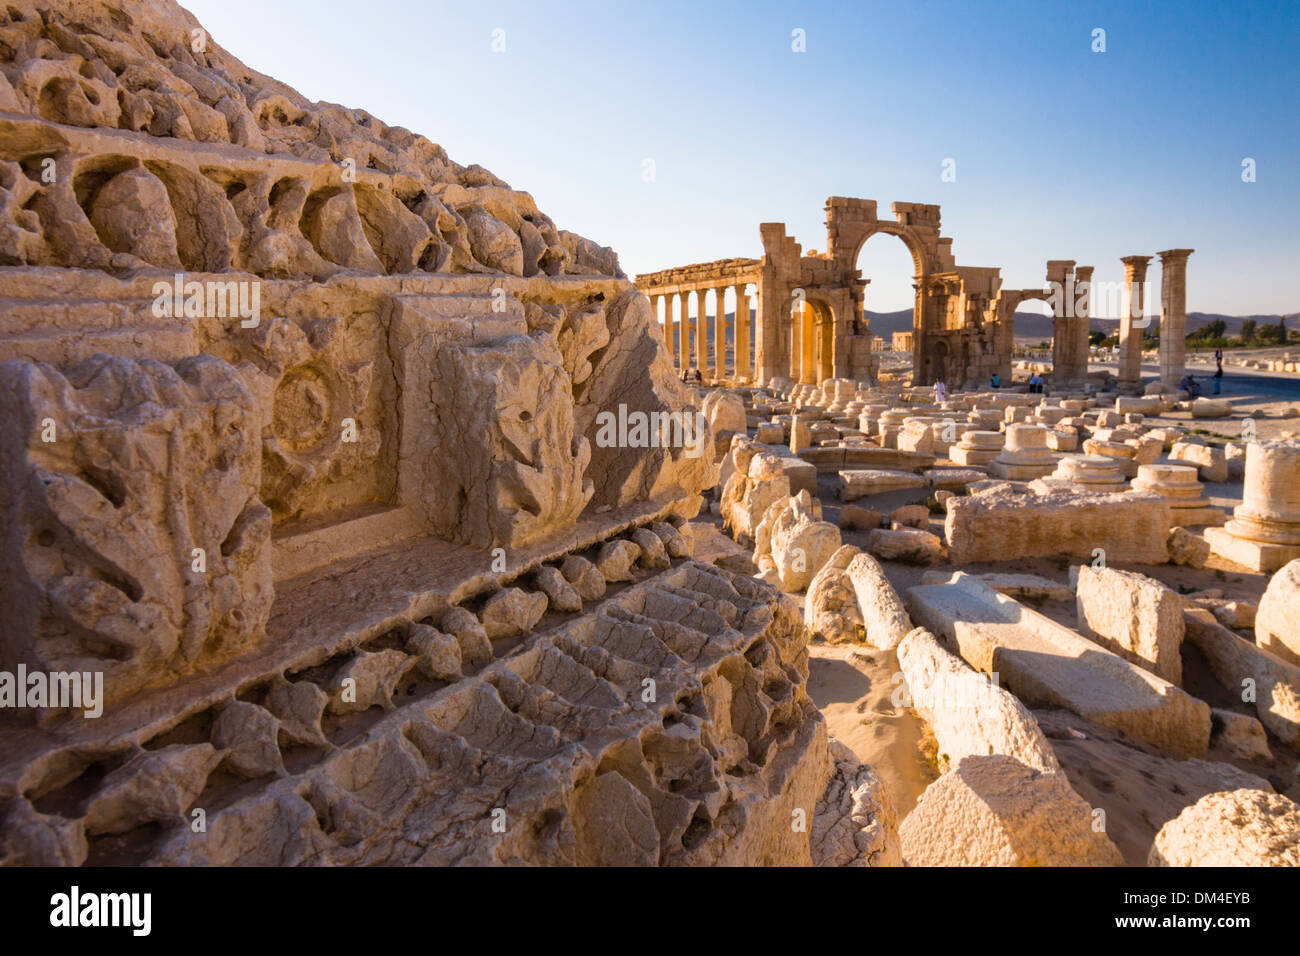 Architectural details with monumental arch in background at the ruins at Palmyra, Syria - Stock Image